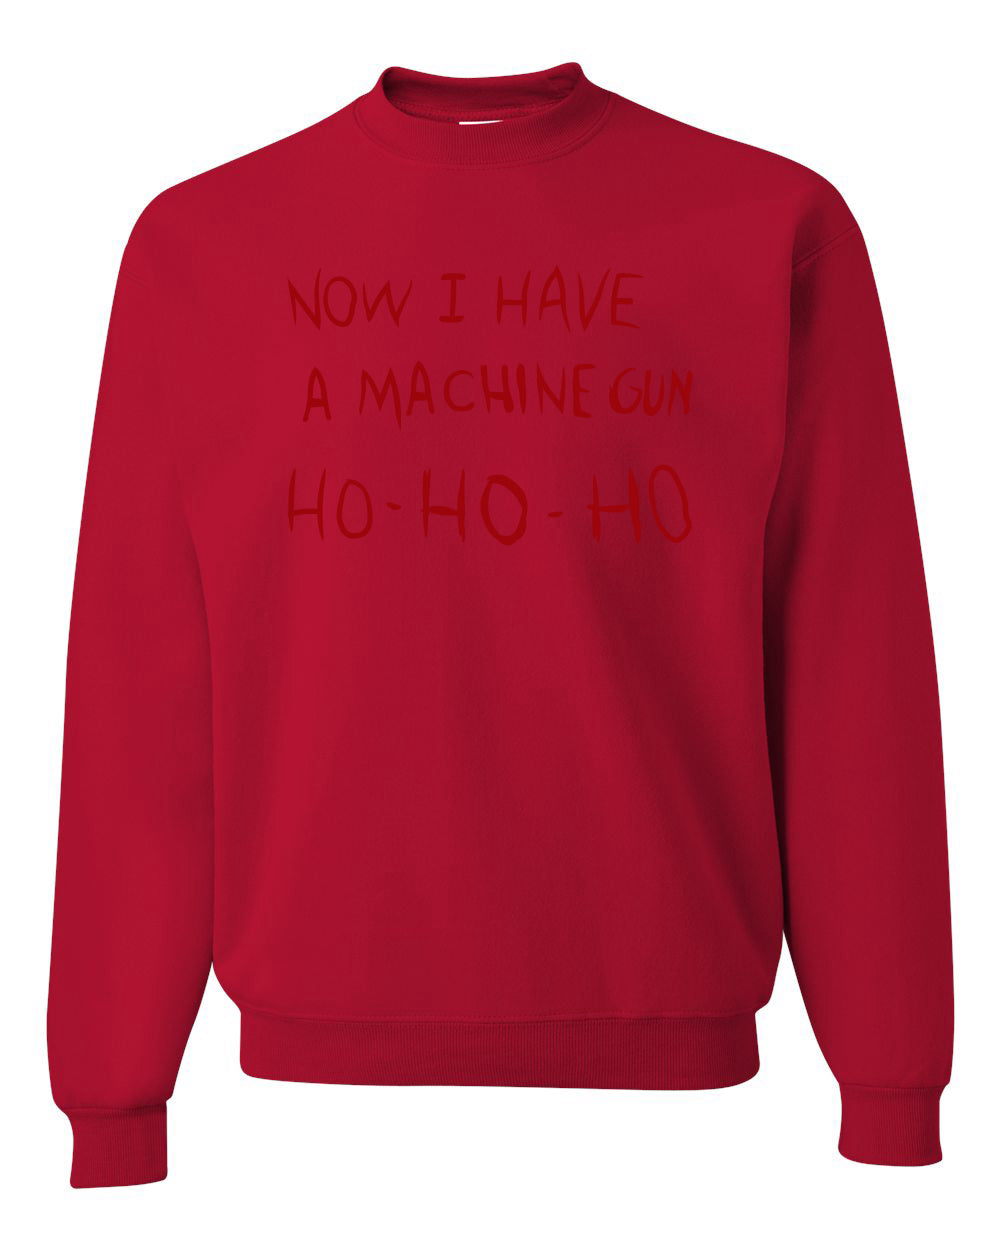 Die Hard Now I Have a Machine Gun Ho ho ho Christmas Unisex Crewneck Graphic Sweatshirt